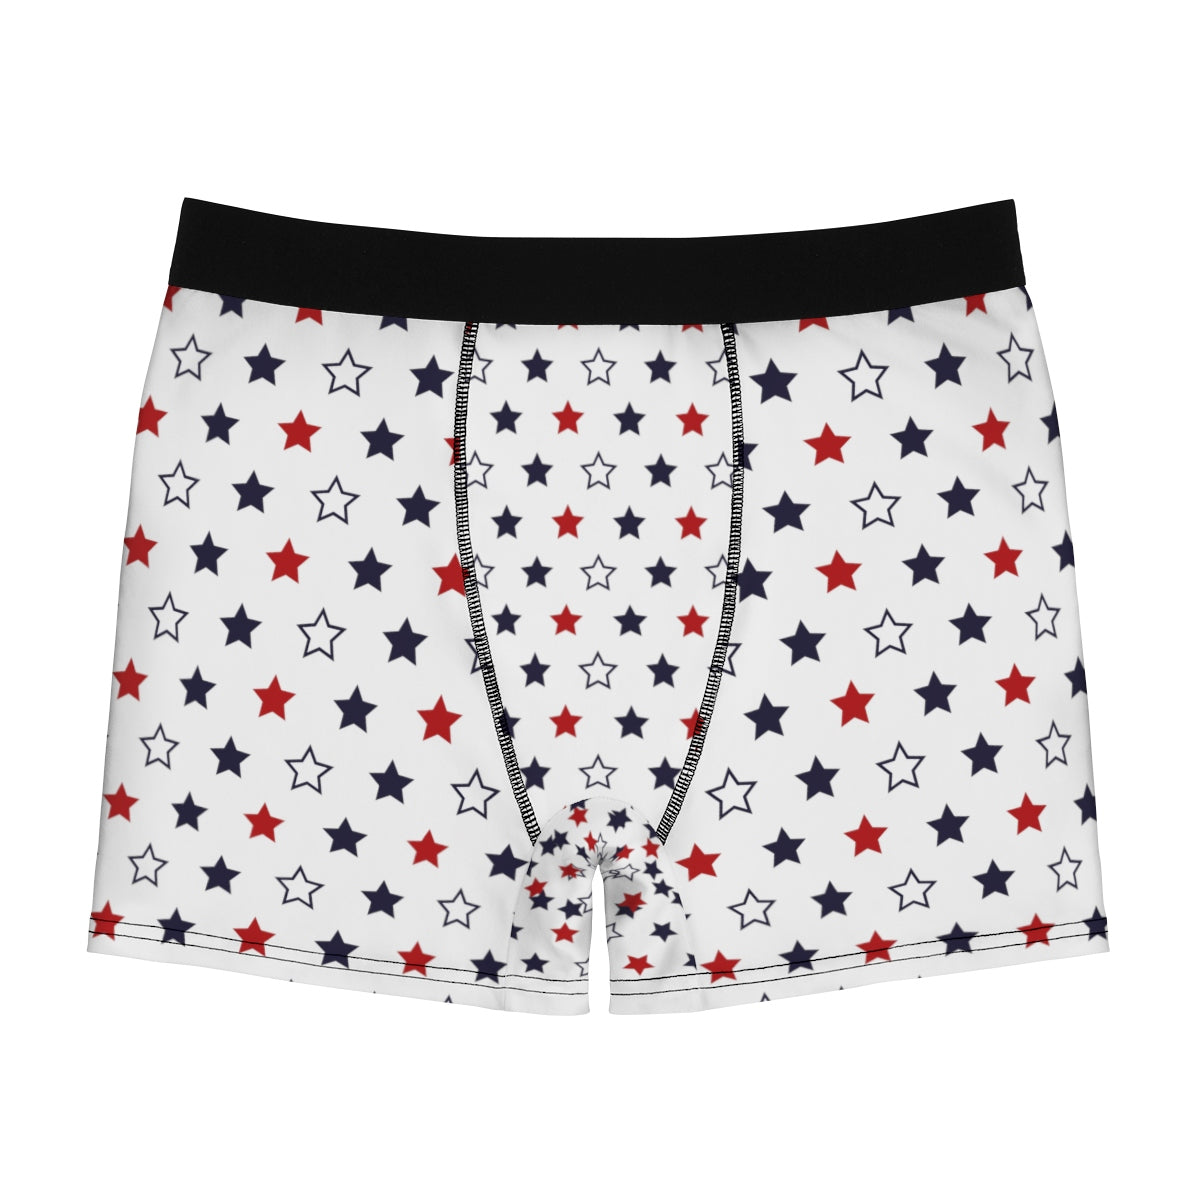 July Forth Independence Day Patriotic American Boy Men's Boxer Briefs-Men's Underwear-L-Black Seams-Heidi Kimura Art LLC